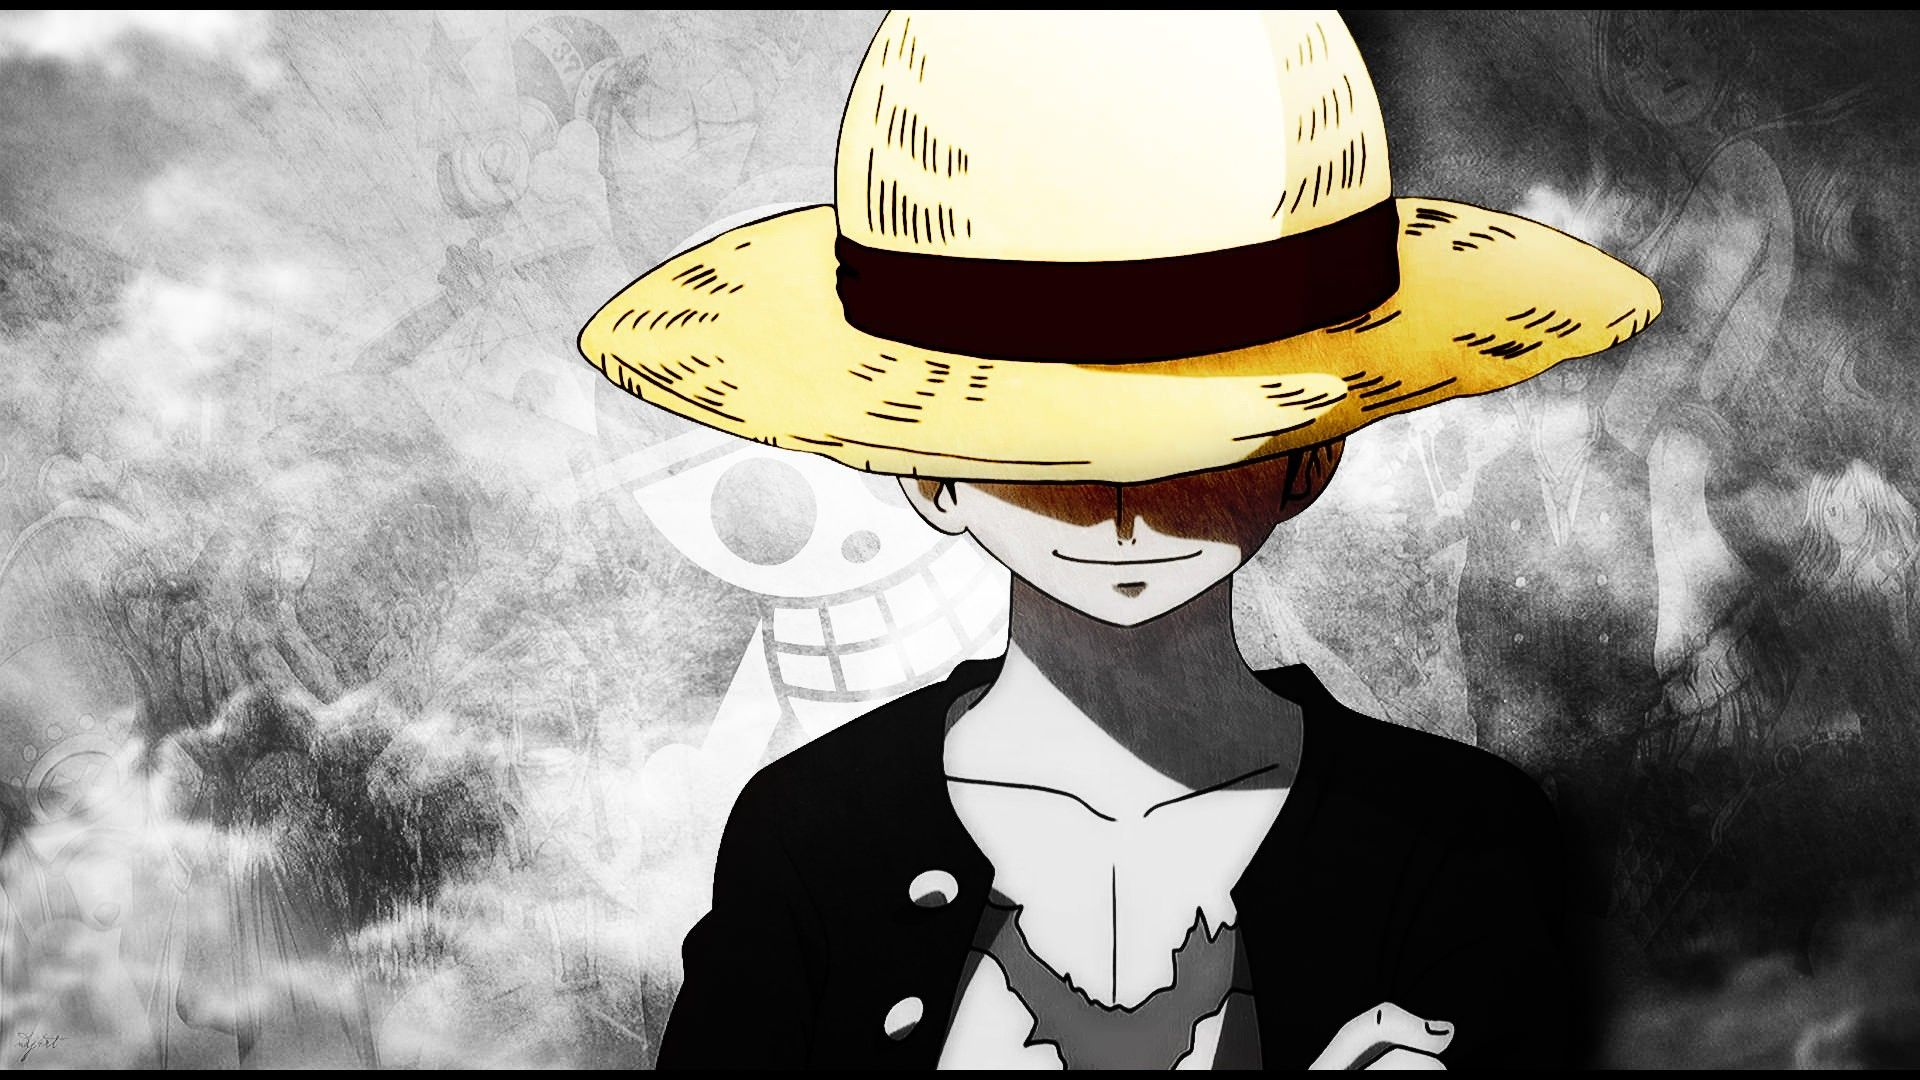 One Piece Luffy Wallpaper On Wallpaper 1080p Hd One Piece Manga One Piece Luffy Anime Wallpaper 1920x1080